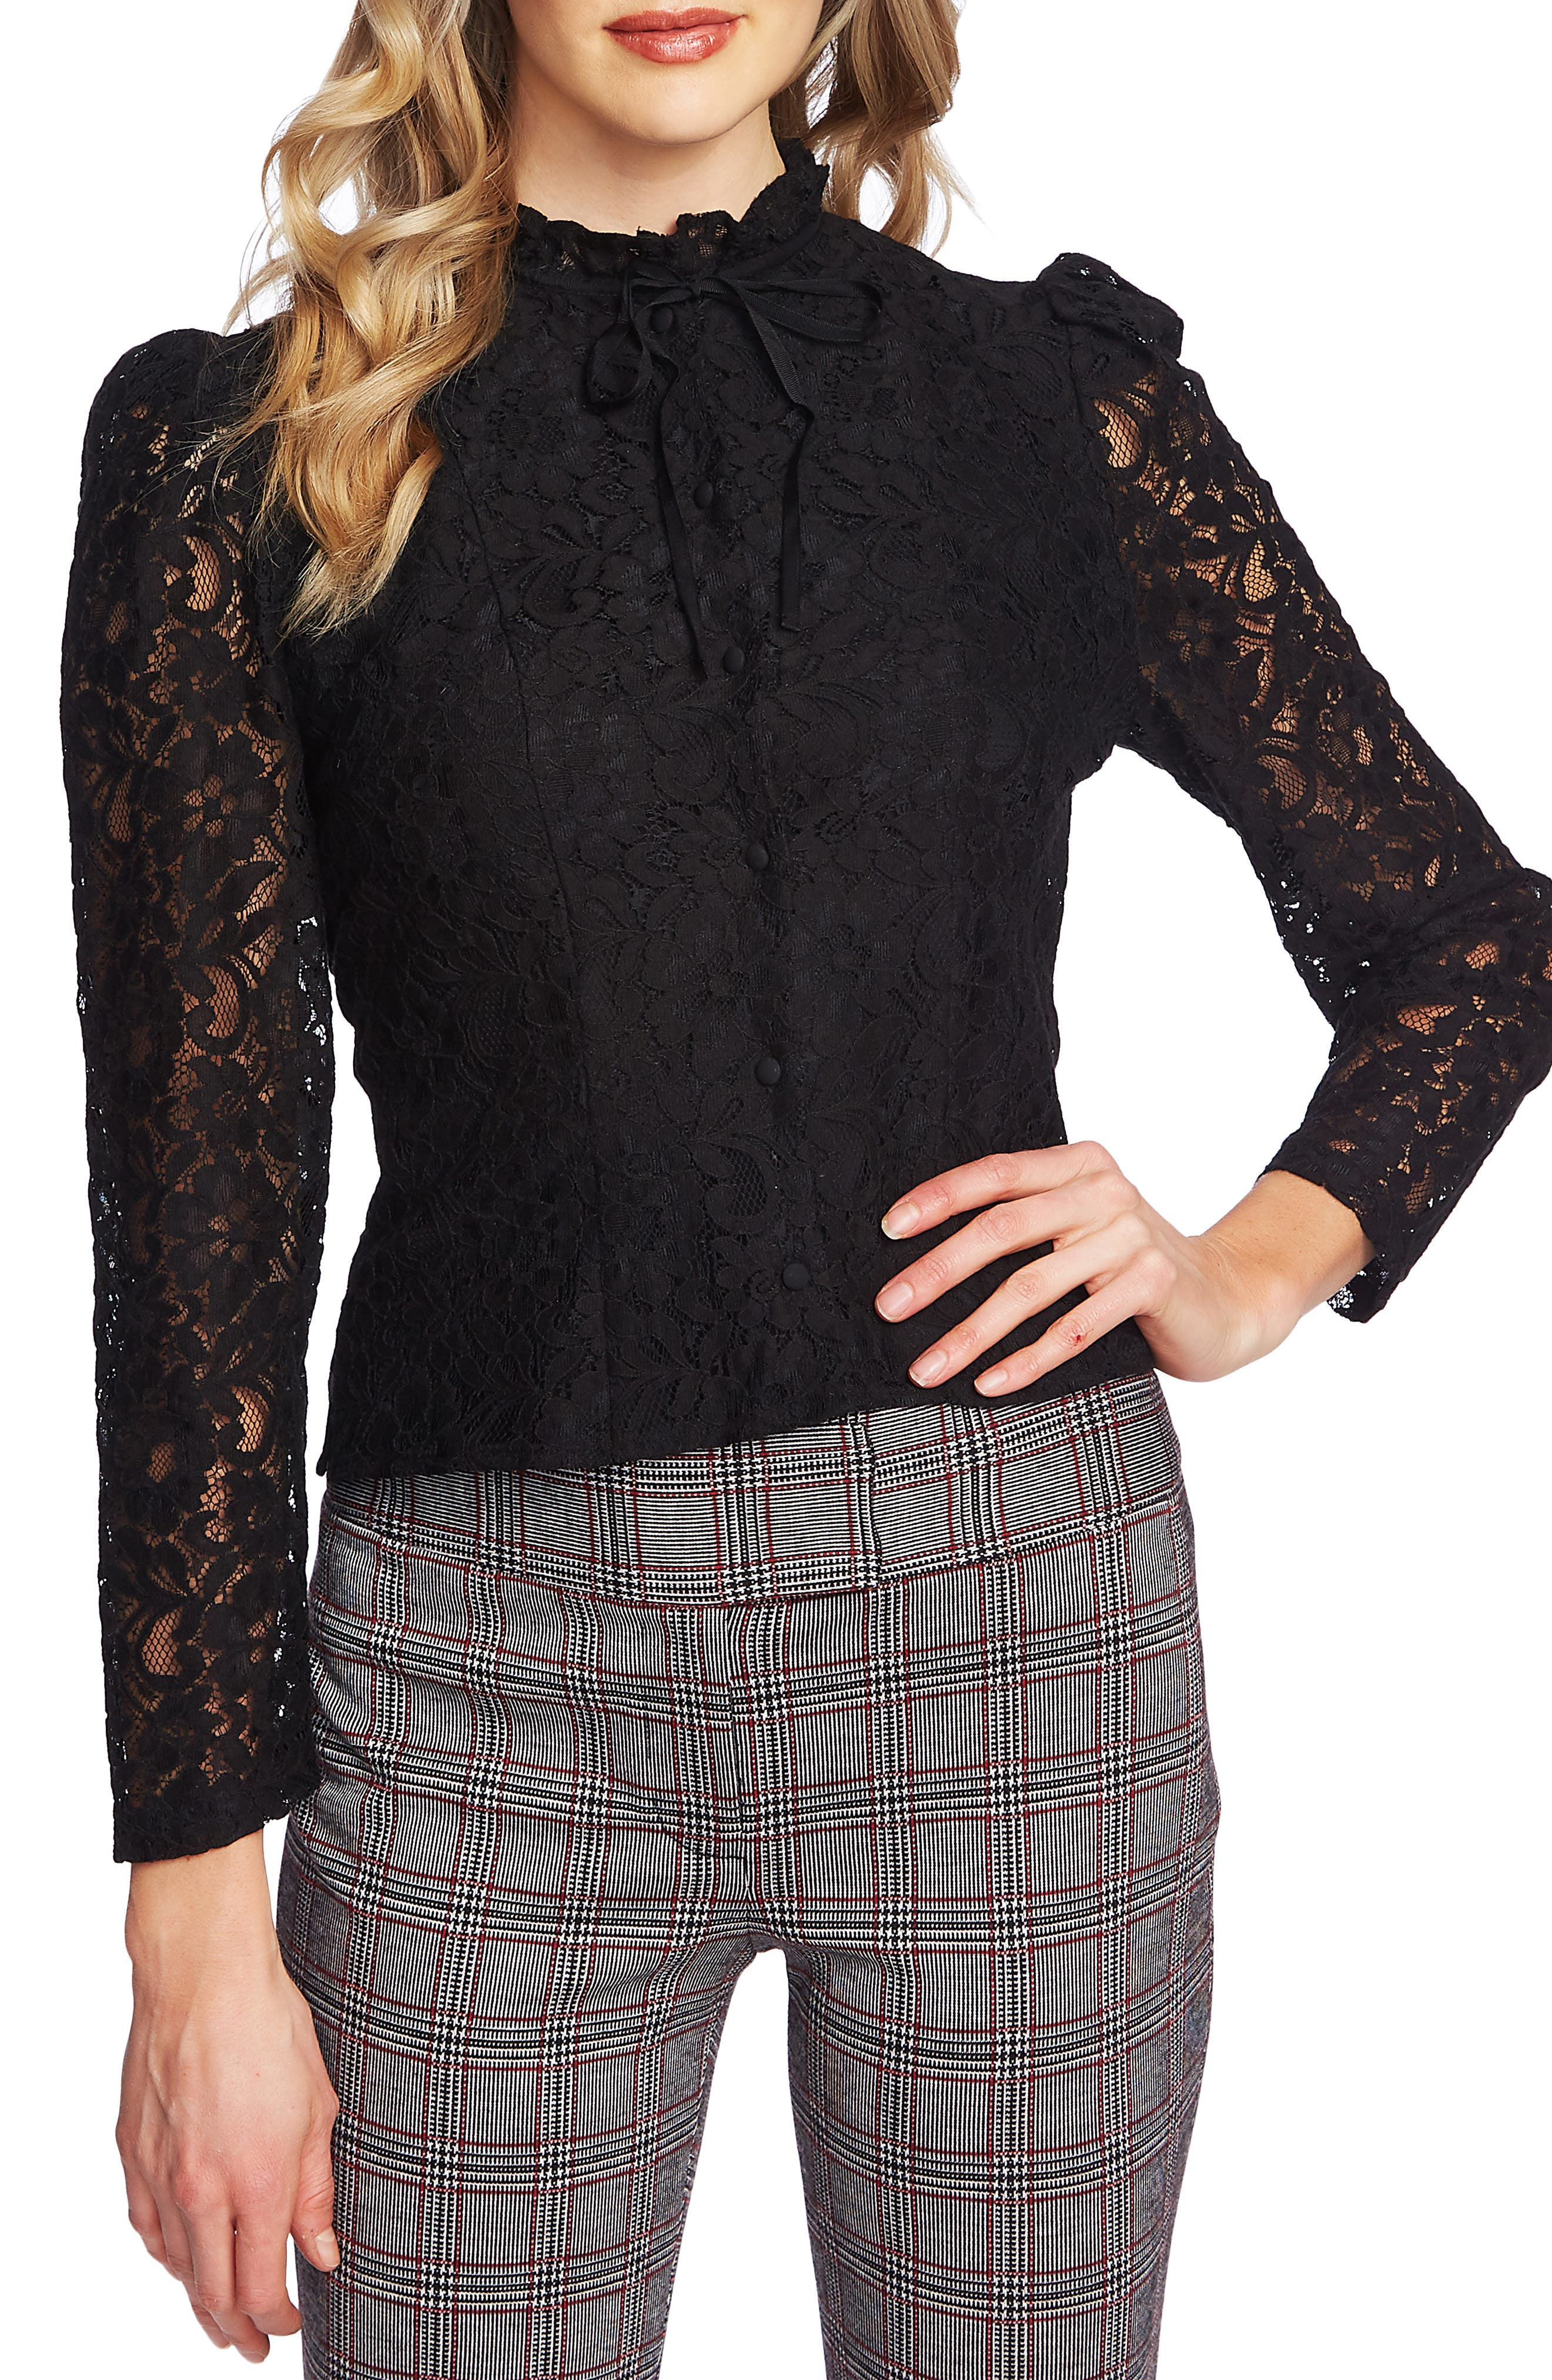 1890s-1900s Fashion, Clothing, Costumes Womens Cece Floral Lace Blouse $99.00 AT vintagedancer.com